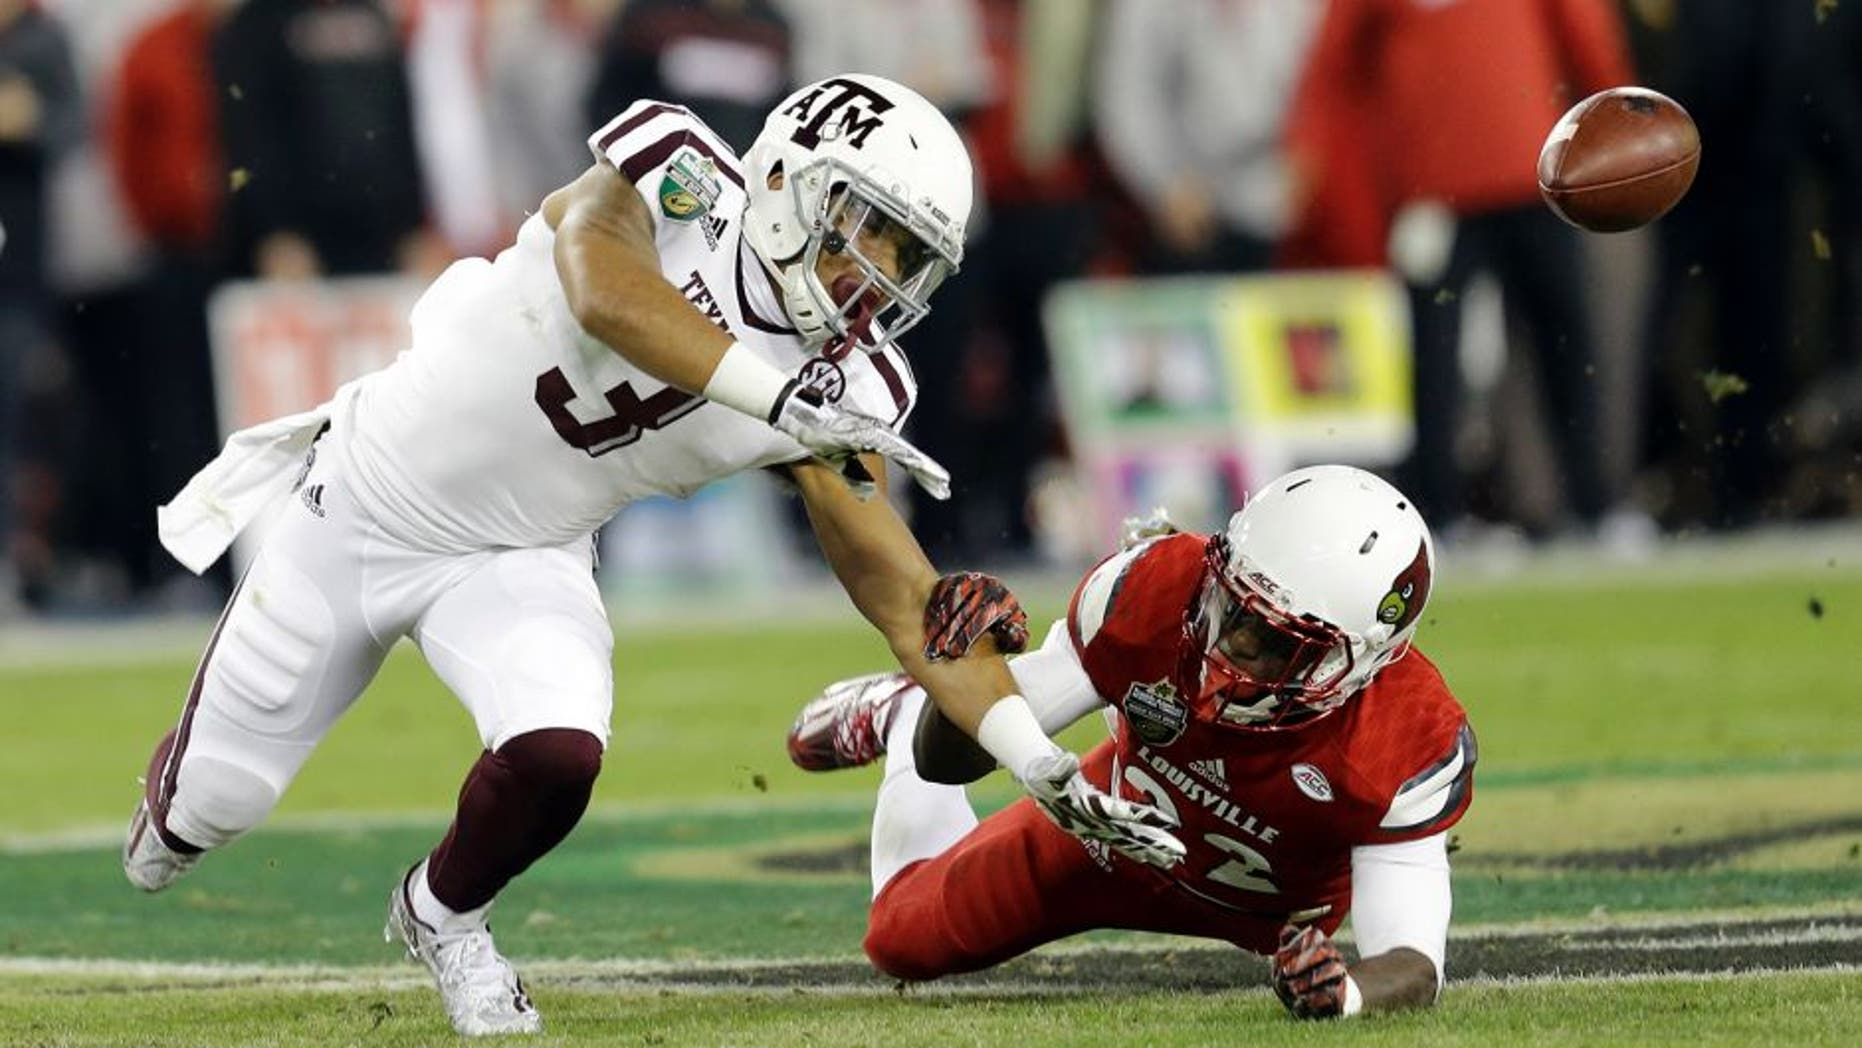 Louisville safety Chucky Williams, right, breaks up a pass intended for Texas A&M wide receiver Christian Kirk (3) in the first half of the Music City Bowl NCAA college football game Wednesday, Dec. 30, 2015, in Nashville, Tenn. (AP Photo/Mark Humphrey)